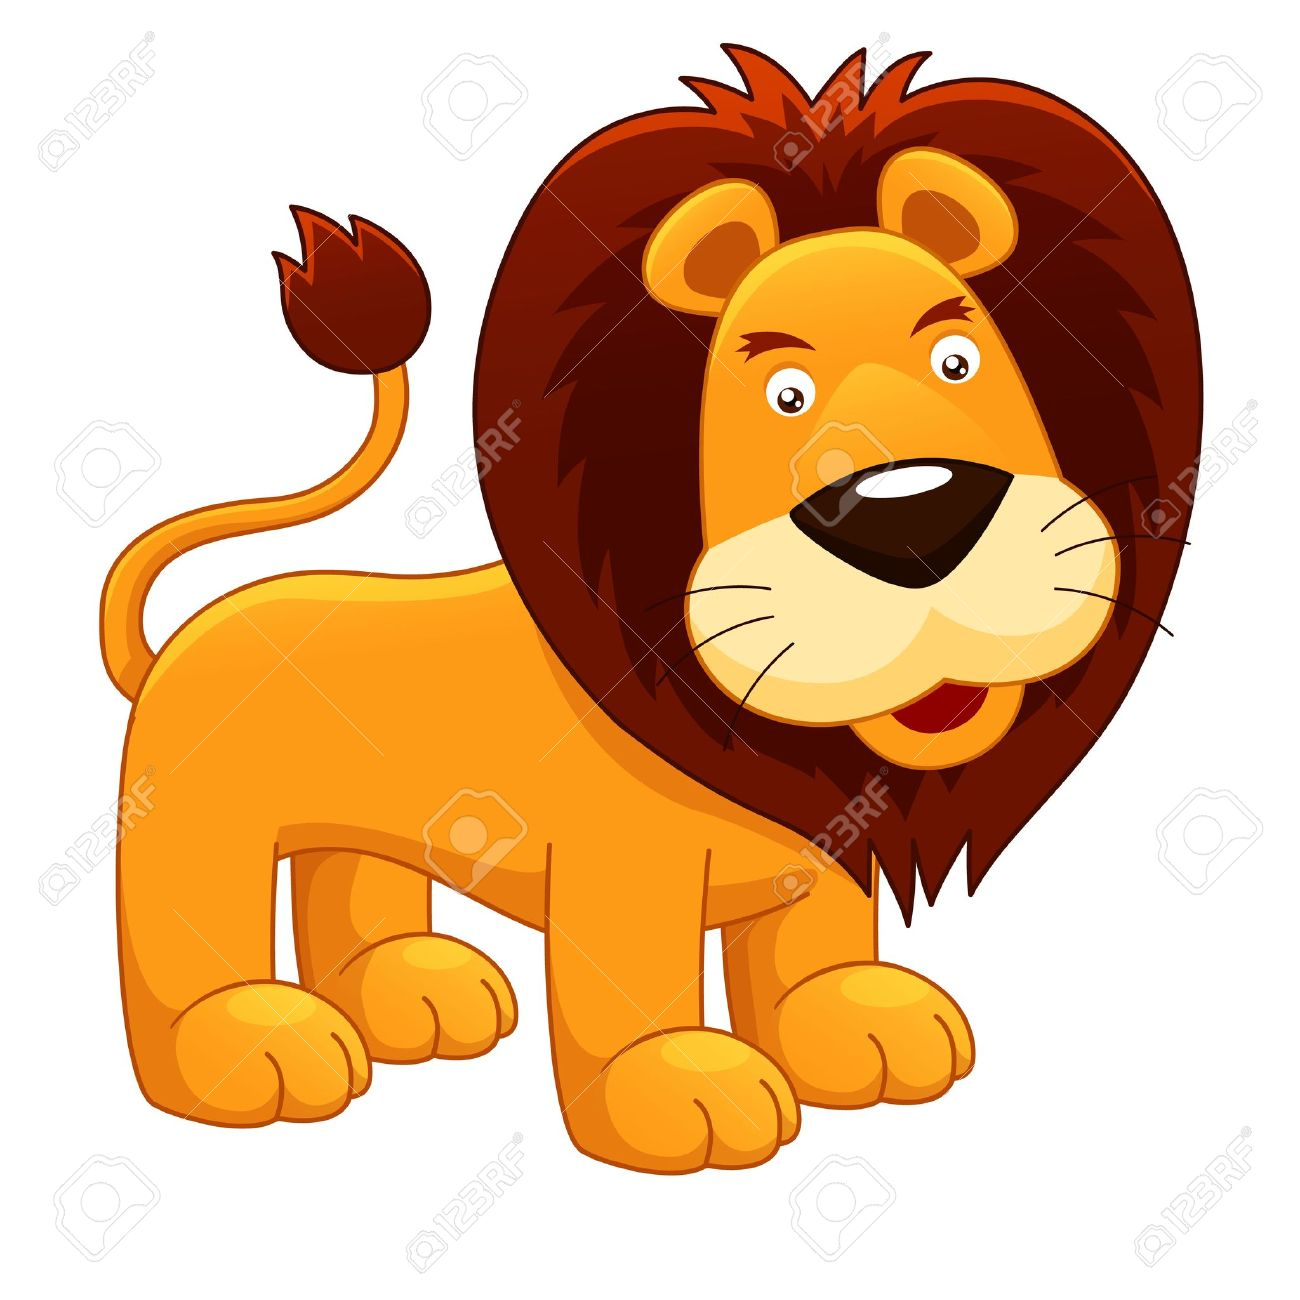 Lion clipart #6, Download drawings